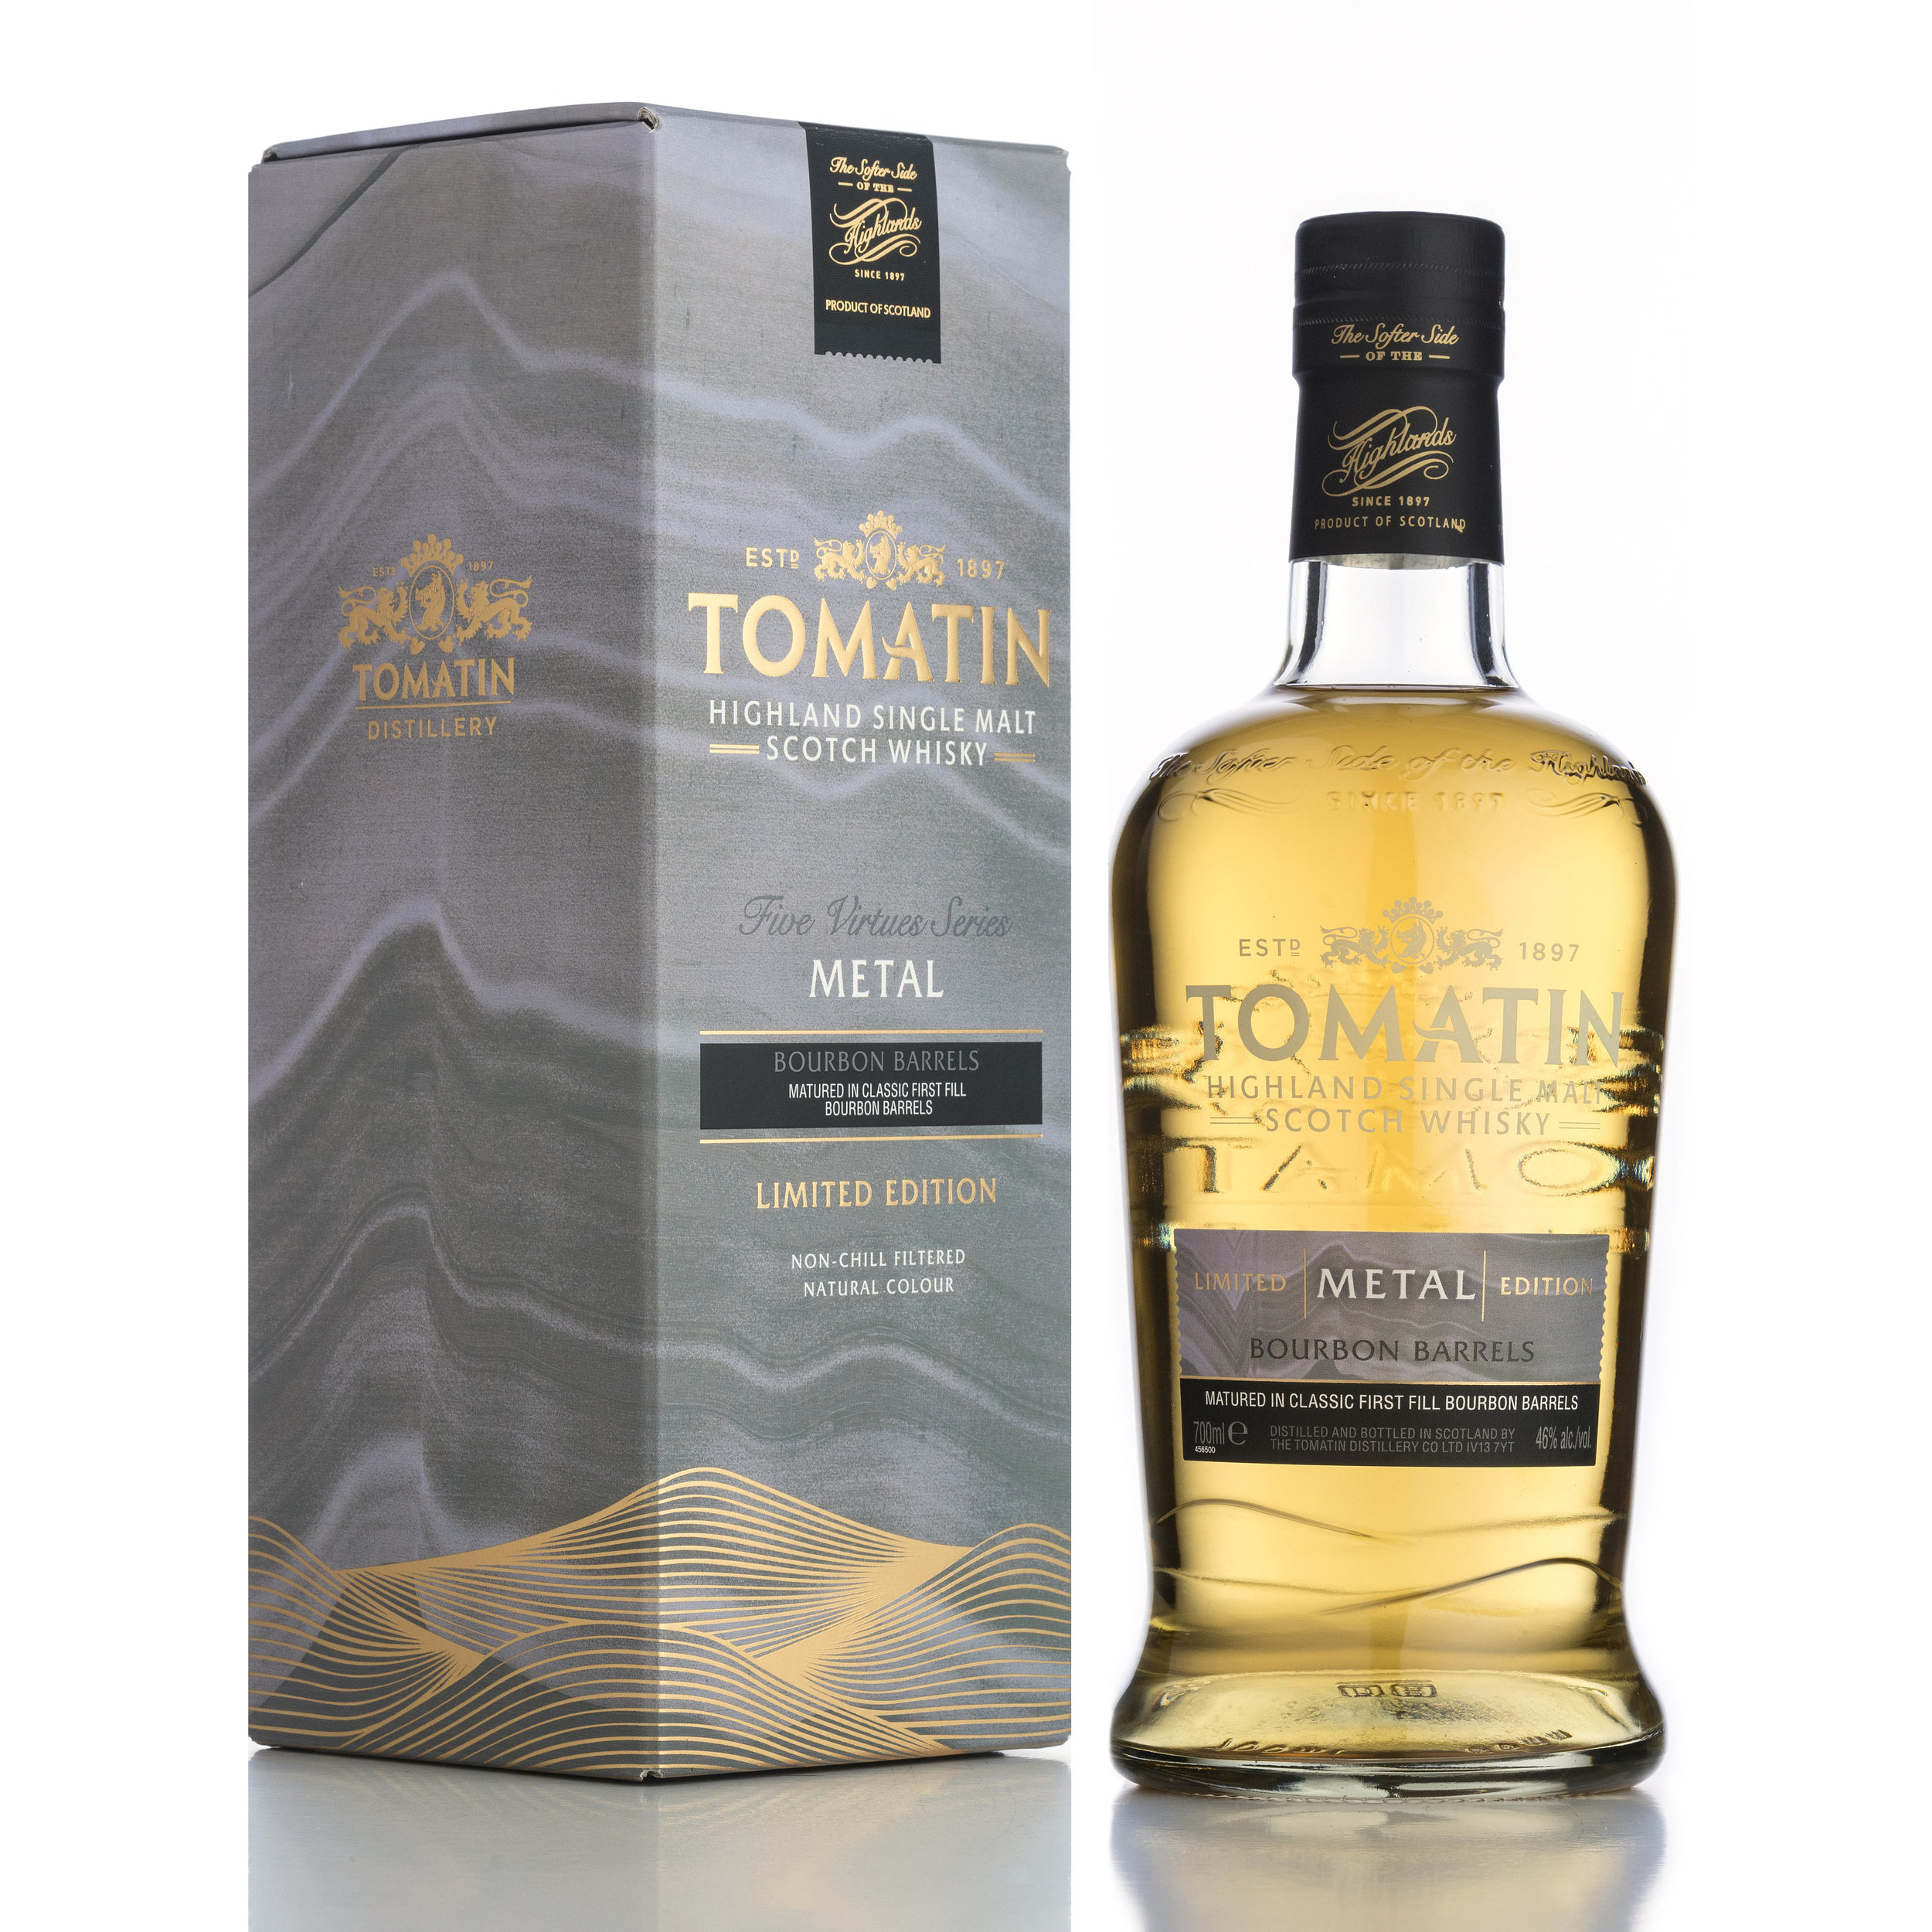 210217_Tomatin Metal and Box_0568.jpg